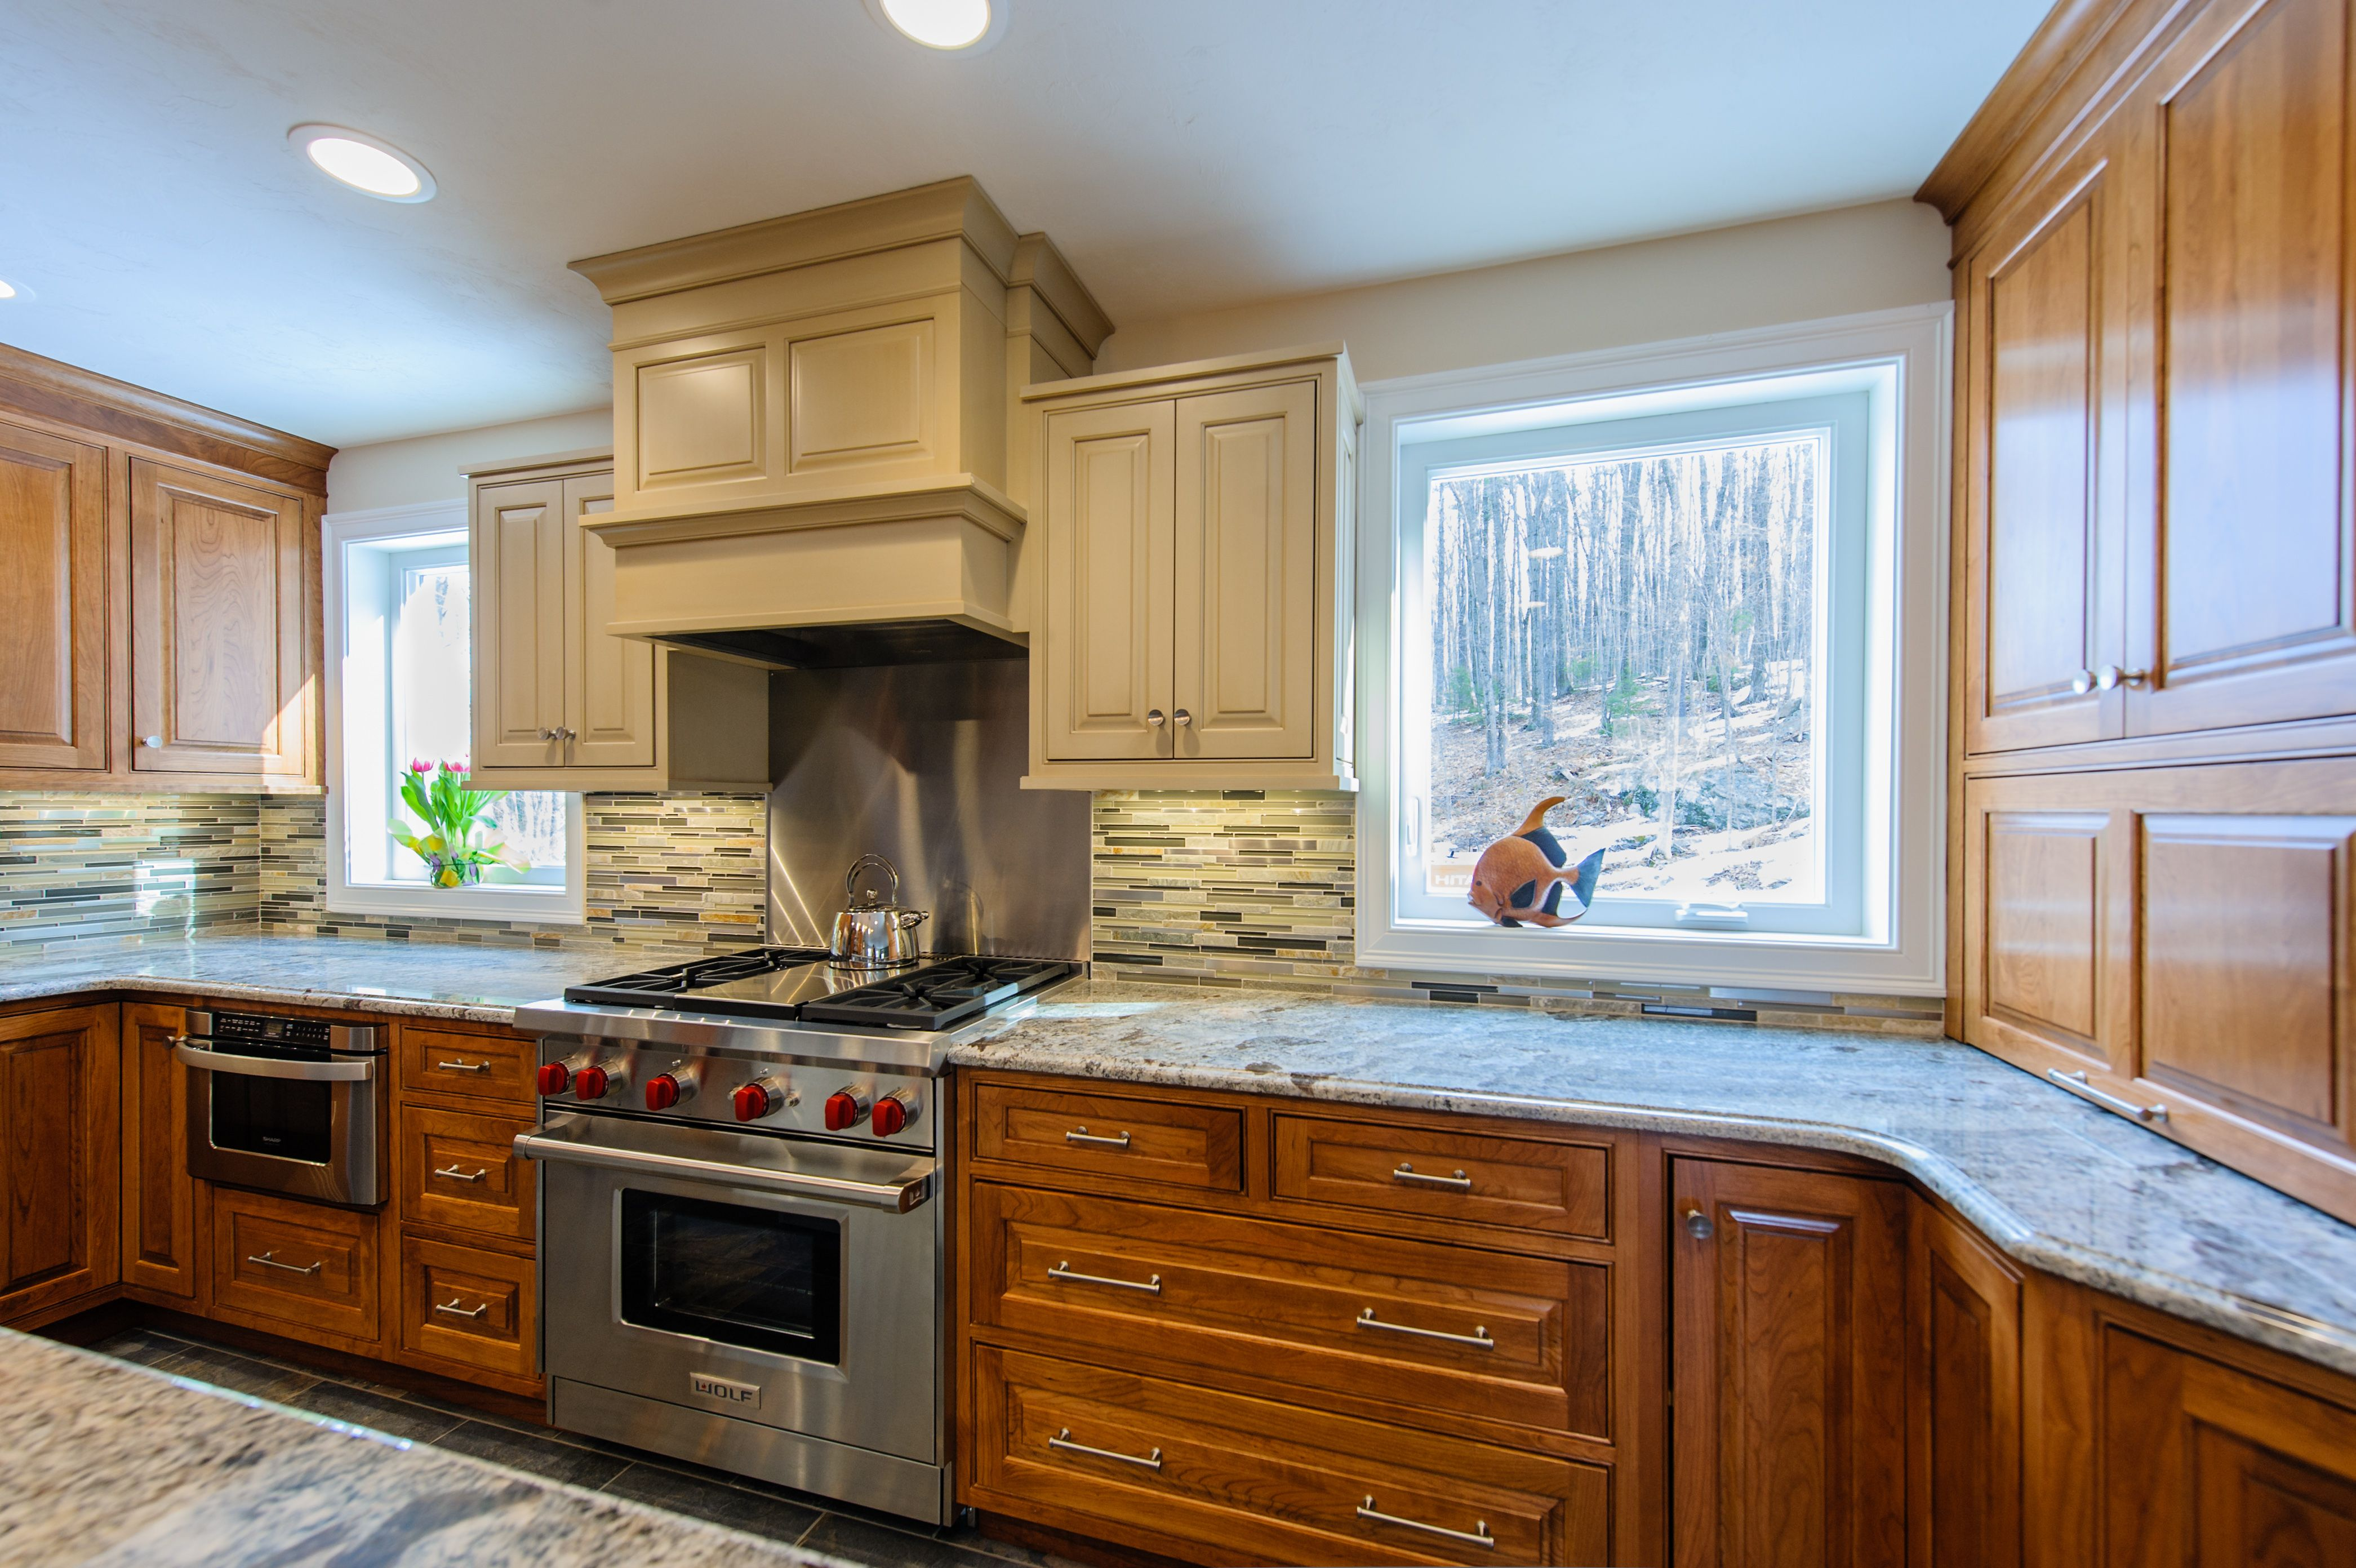 This Dura Supreme Kitchen Used Two Tone Cabinets To Draw Attention To The Decorative Wood Hood And Wolf R Kitchen Bathroom Remodel Kitchen Remodel Custom Homes